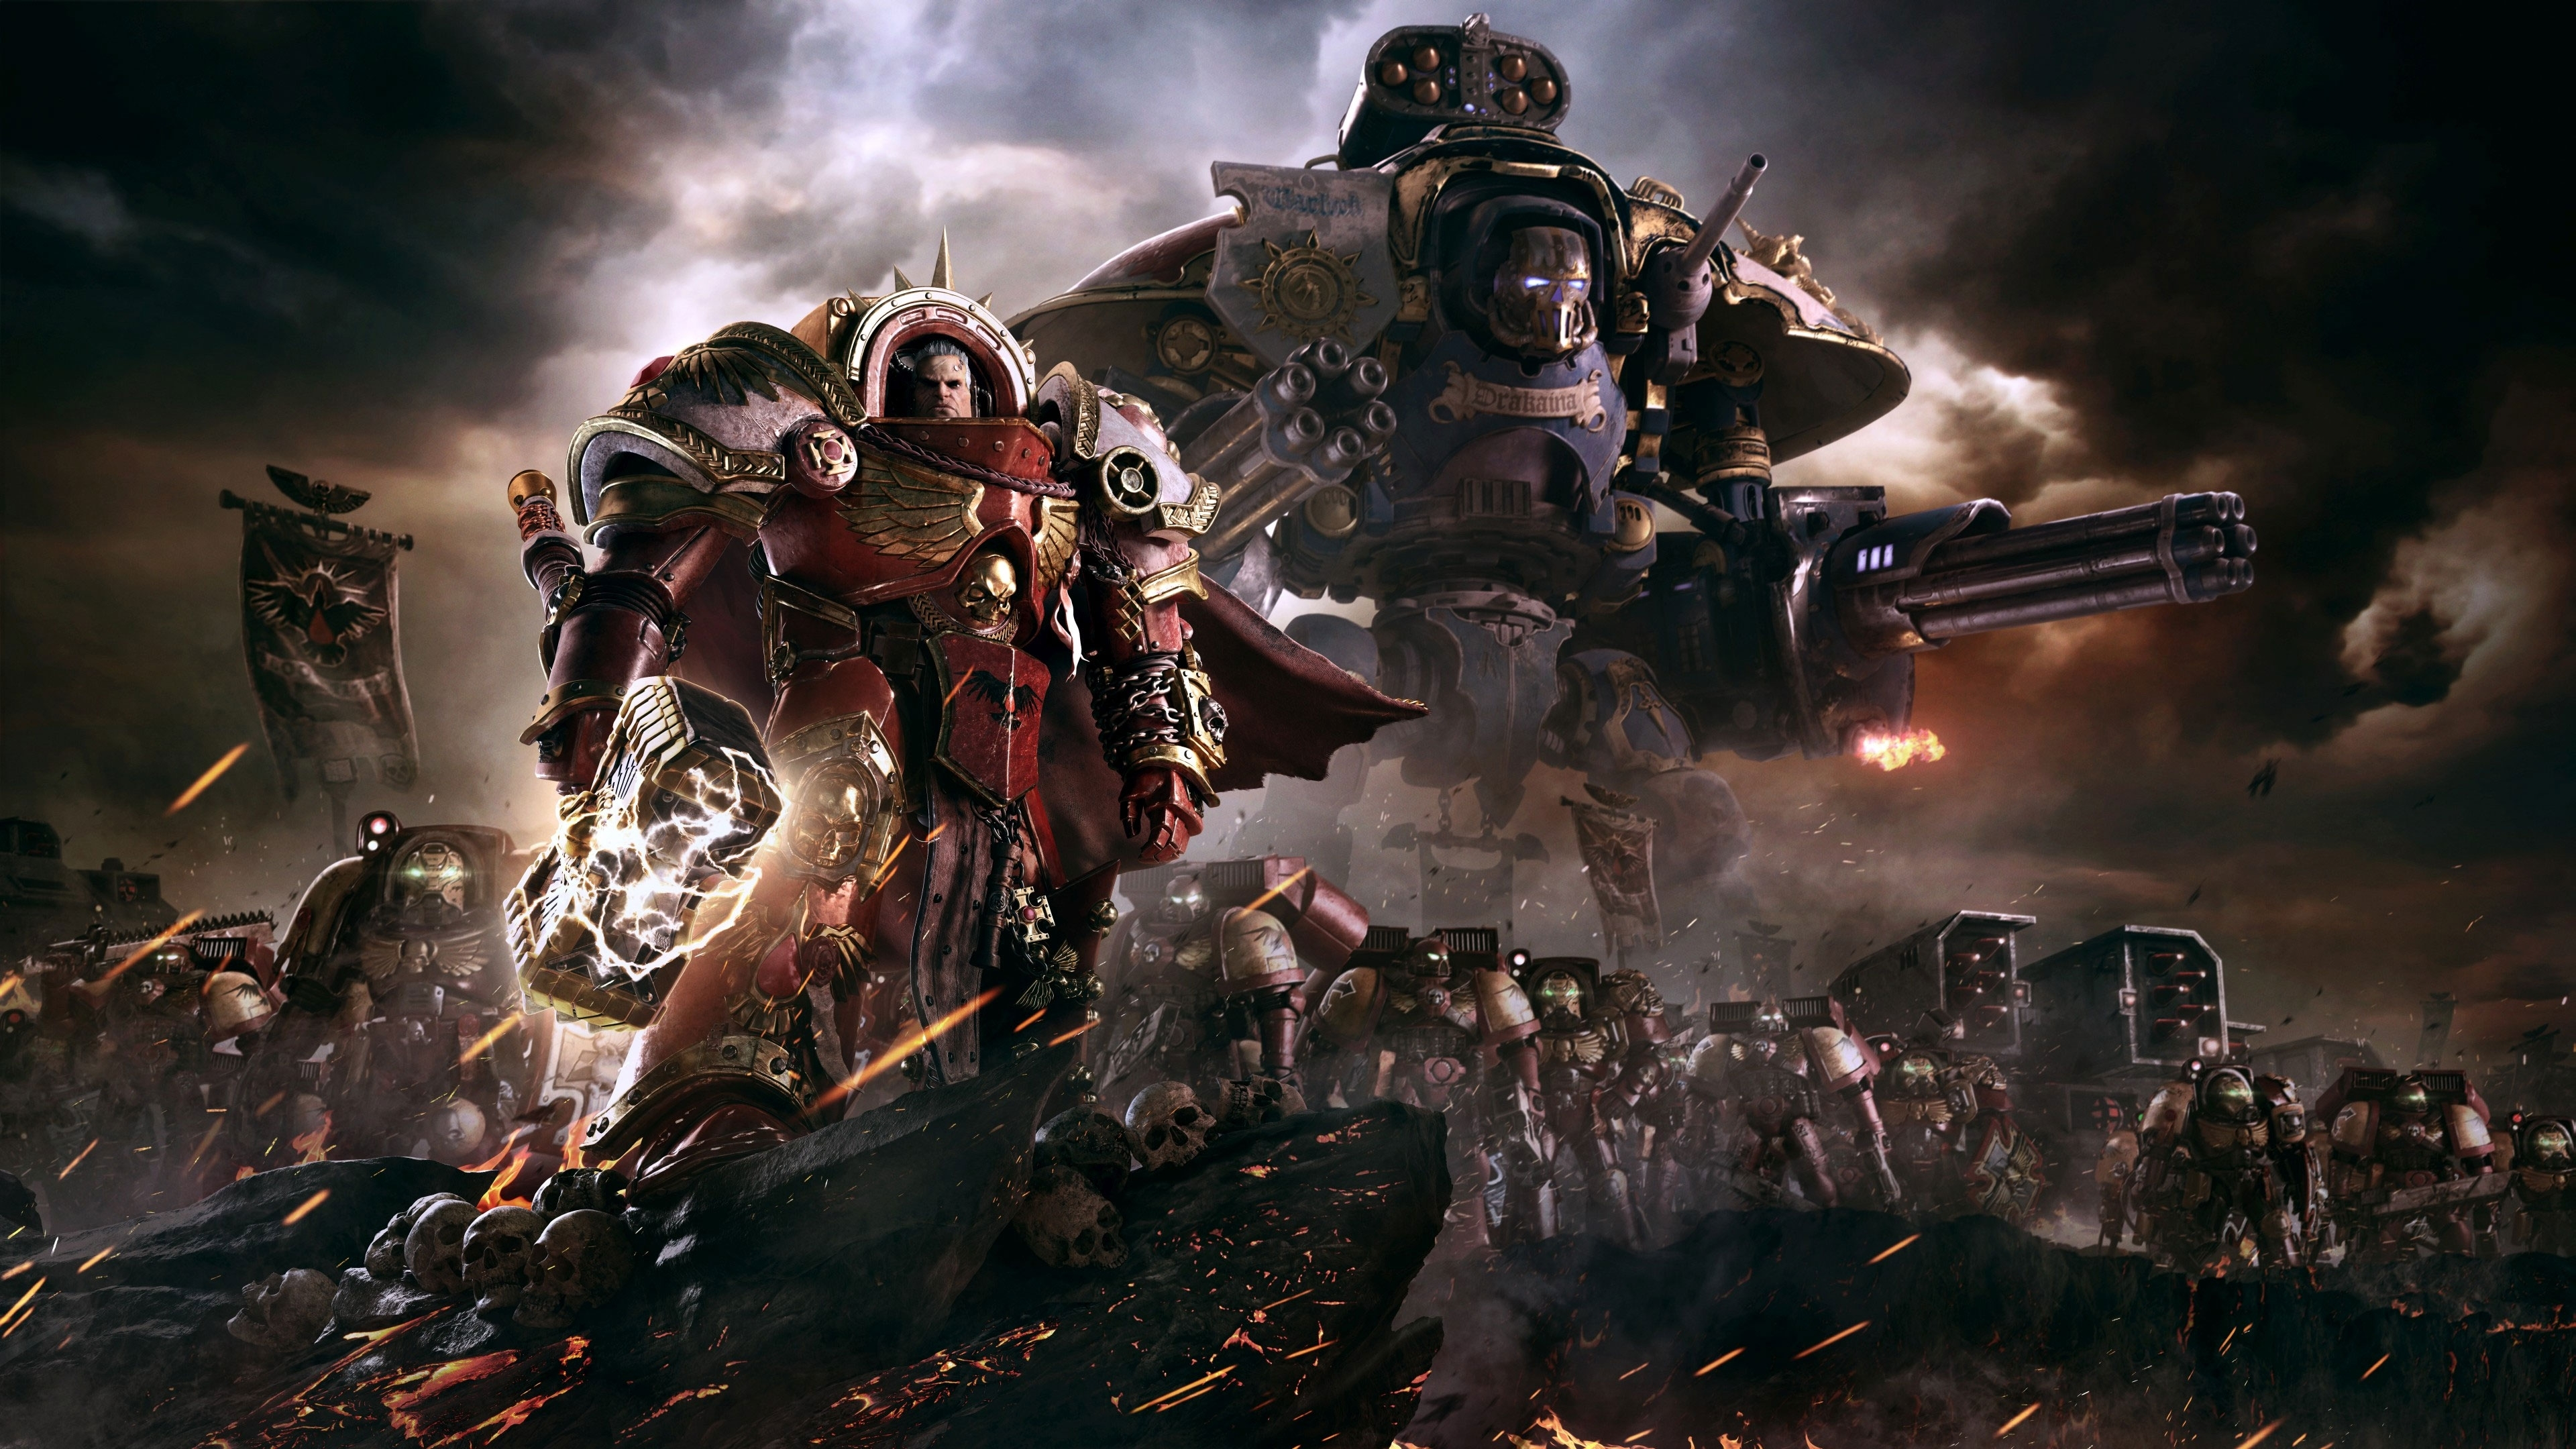 warhammer 40,000: dawn of war iii wallpapers in ultra hd | 4k